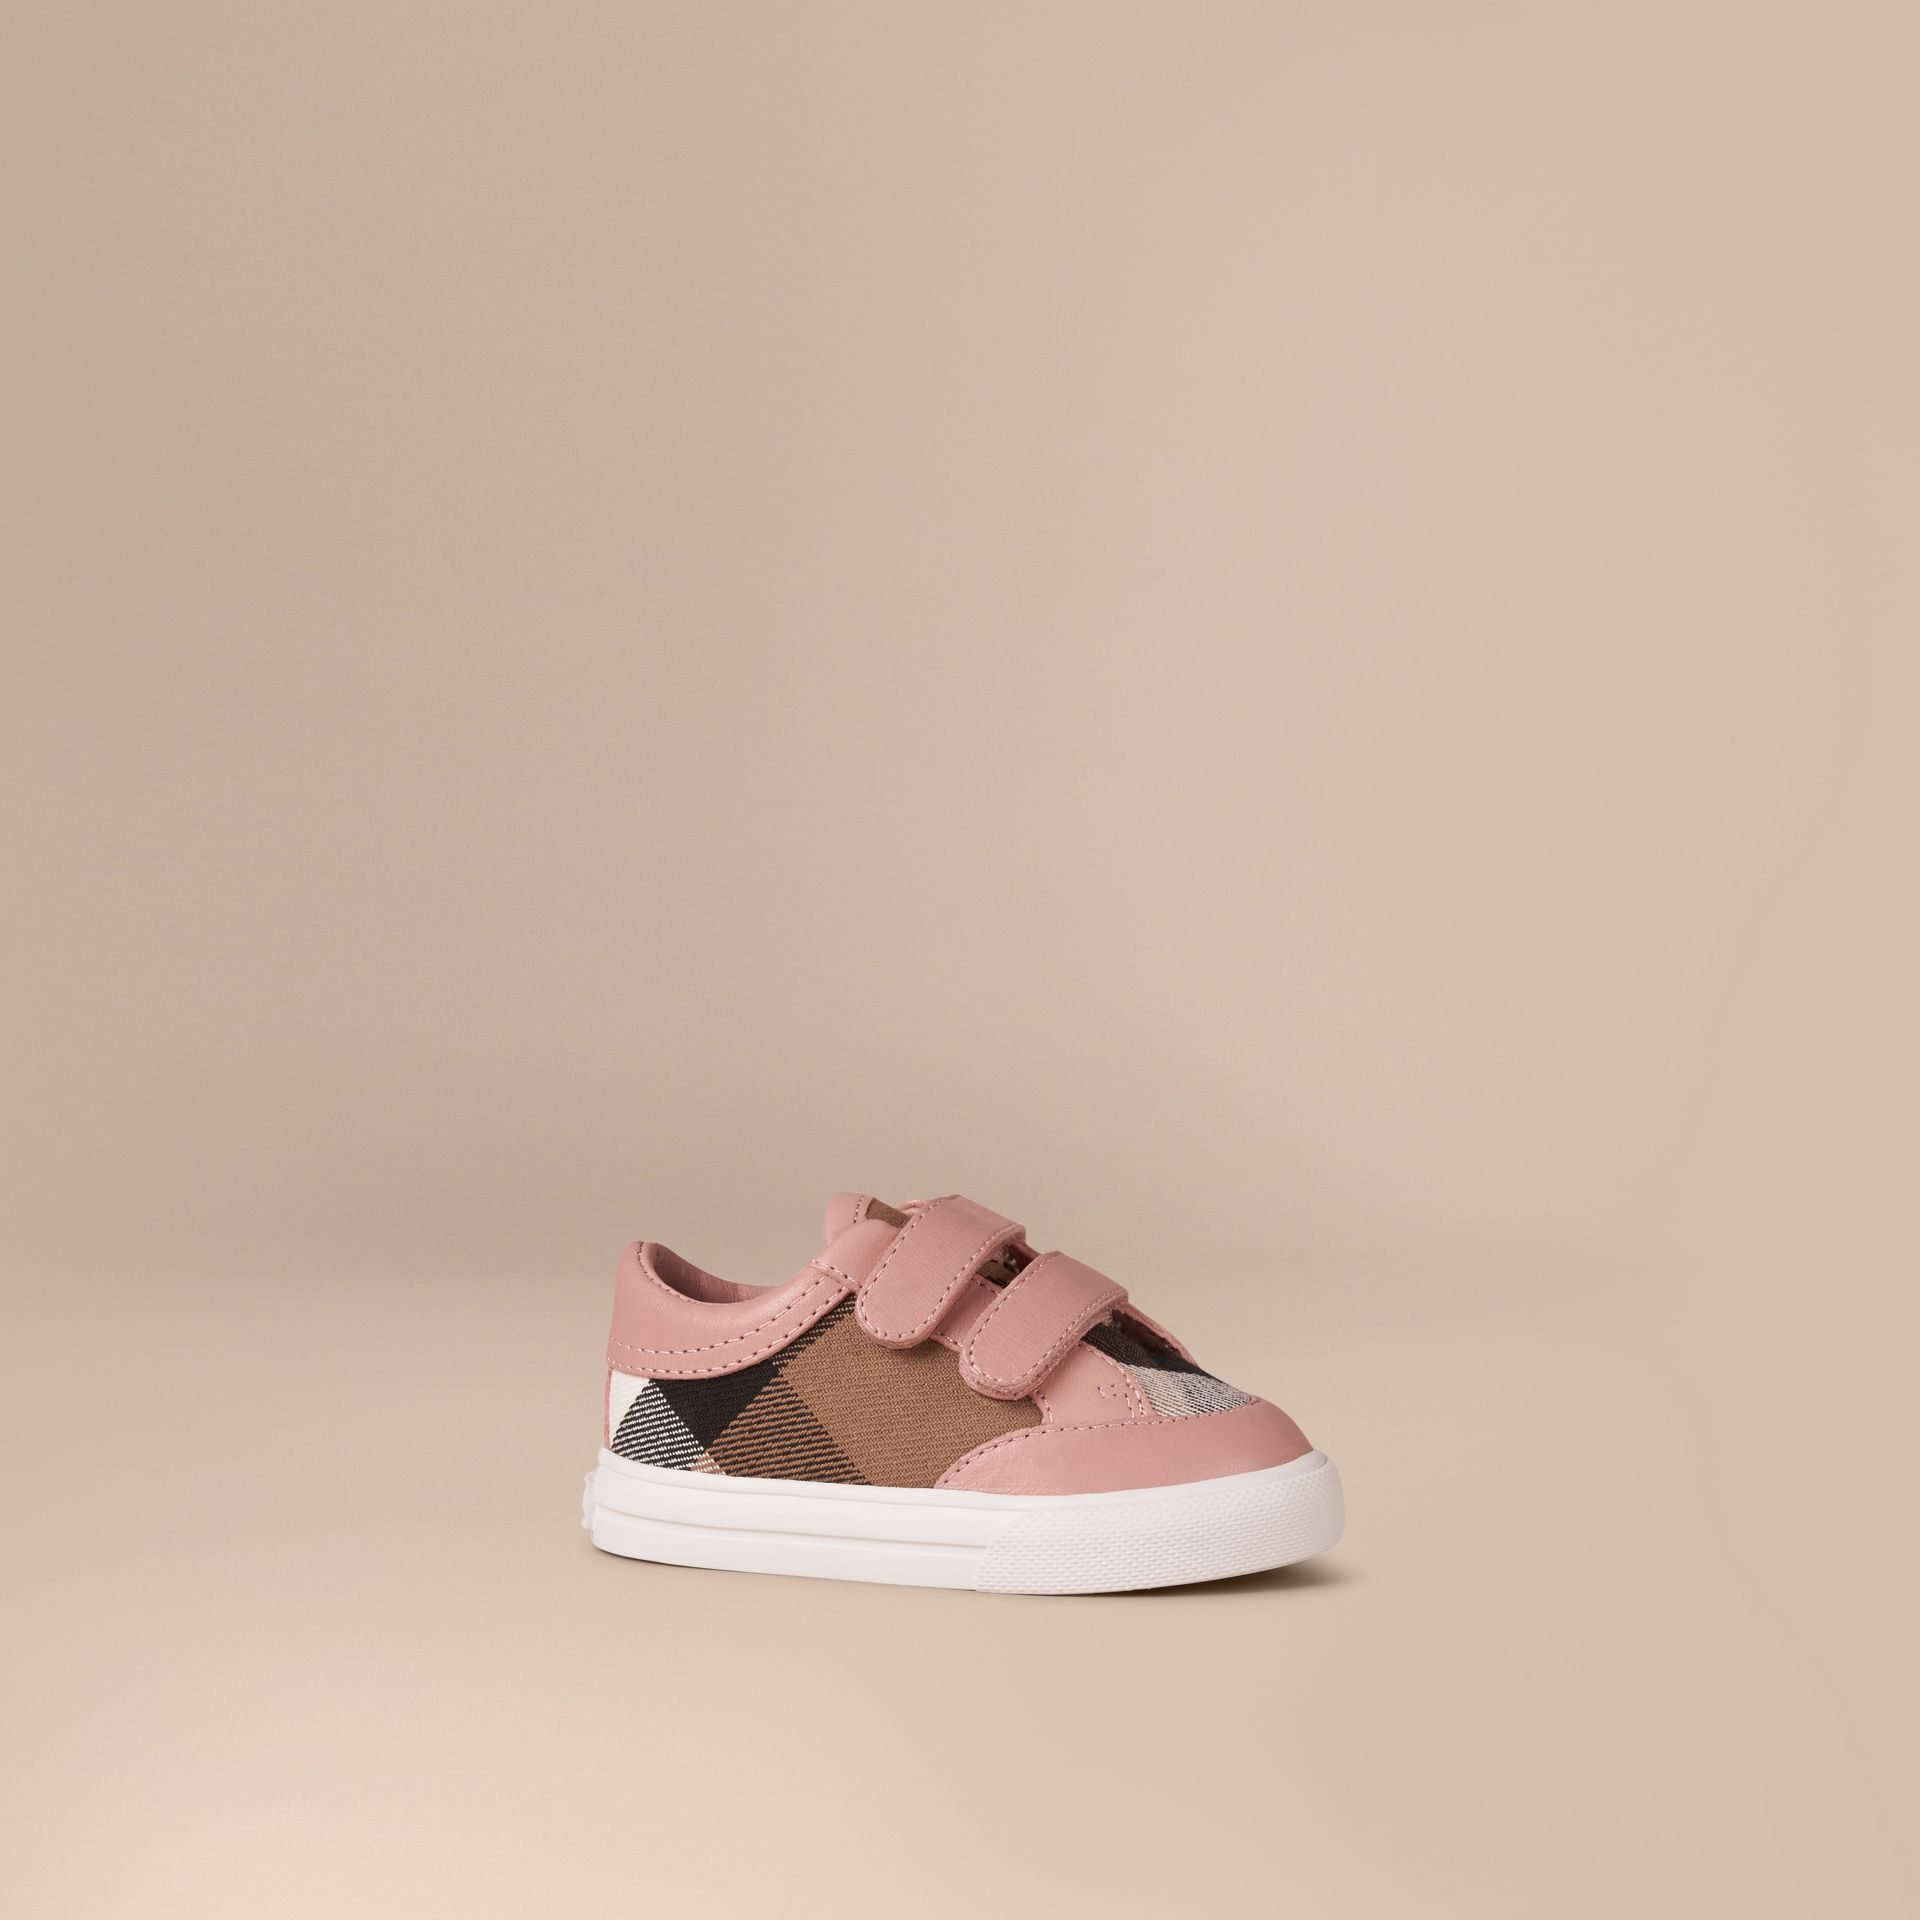 Peony rose melange House Check and Leather Trainers Peony Rose Melange - gallery image 1